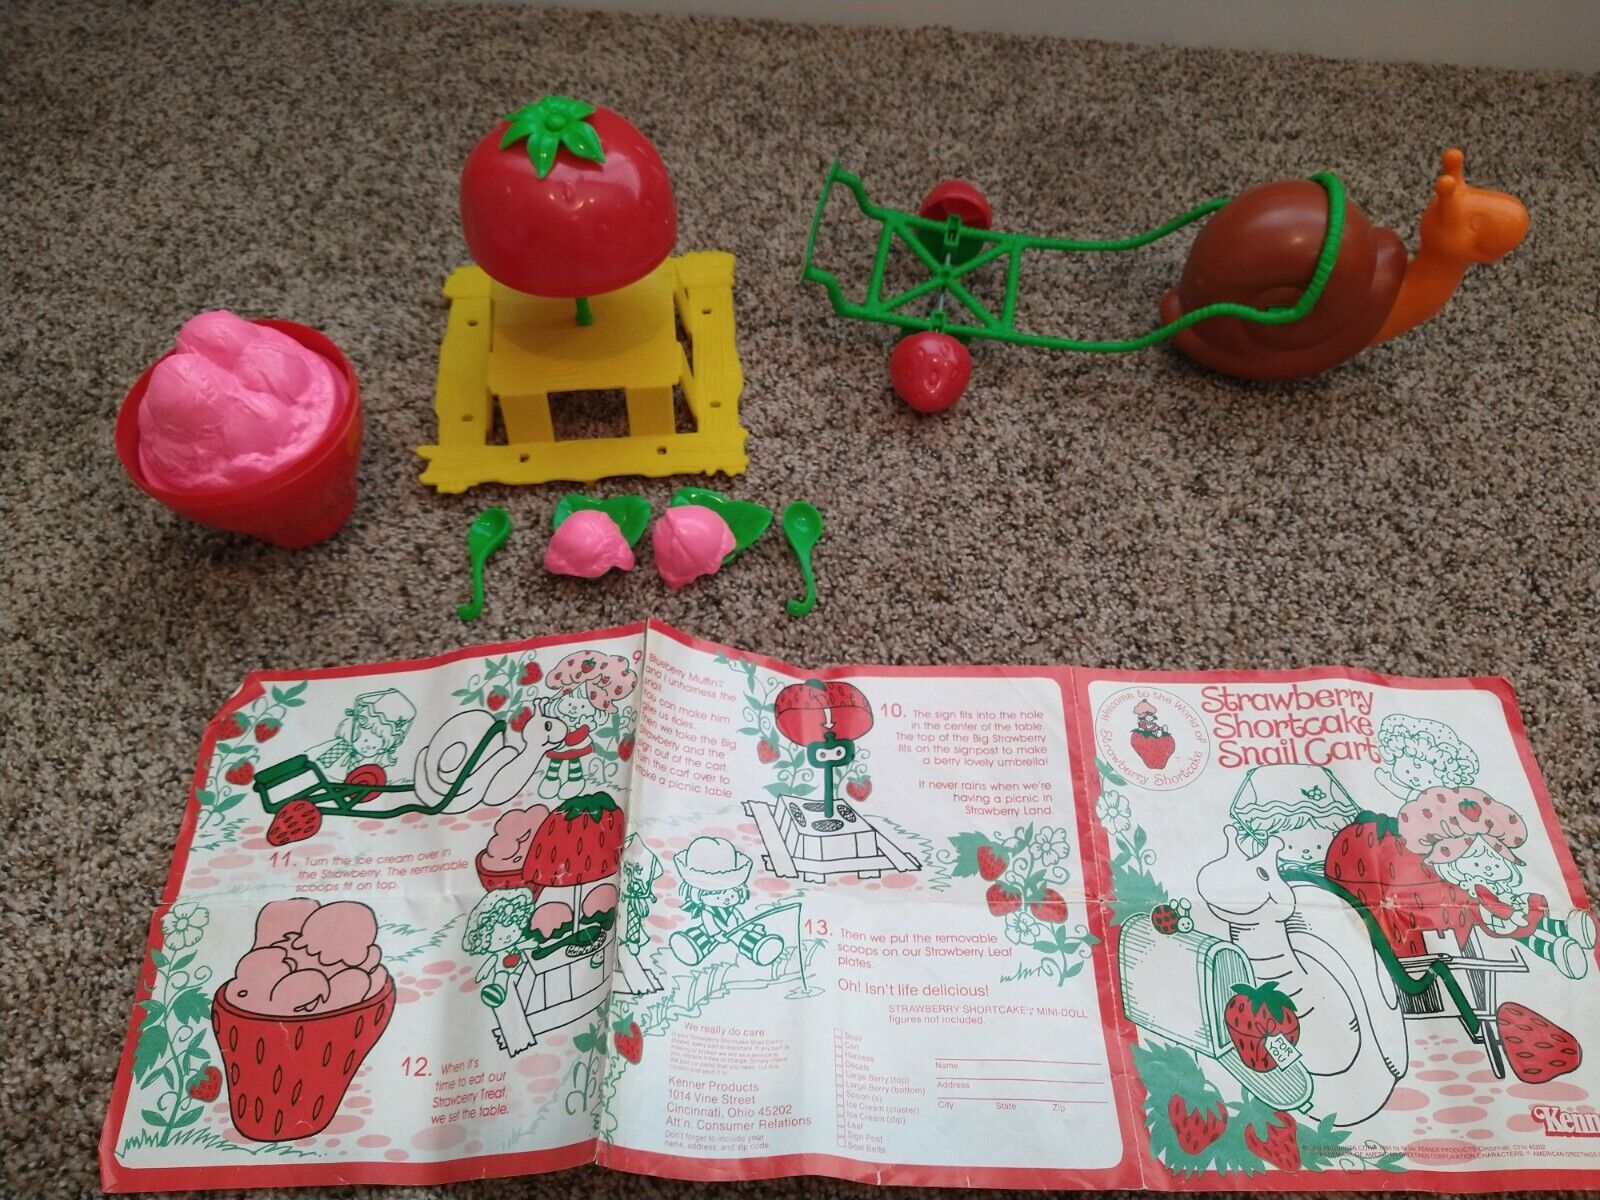 Vintage STRAWBERRY SHORTCAKE Snail Cart - Accessories And Directions 1980s - $18.00